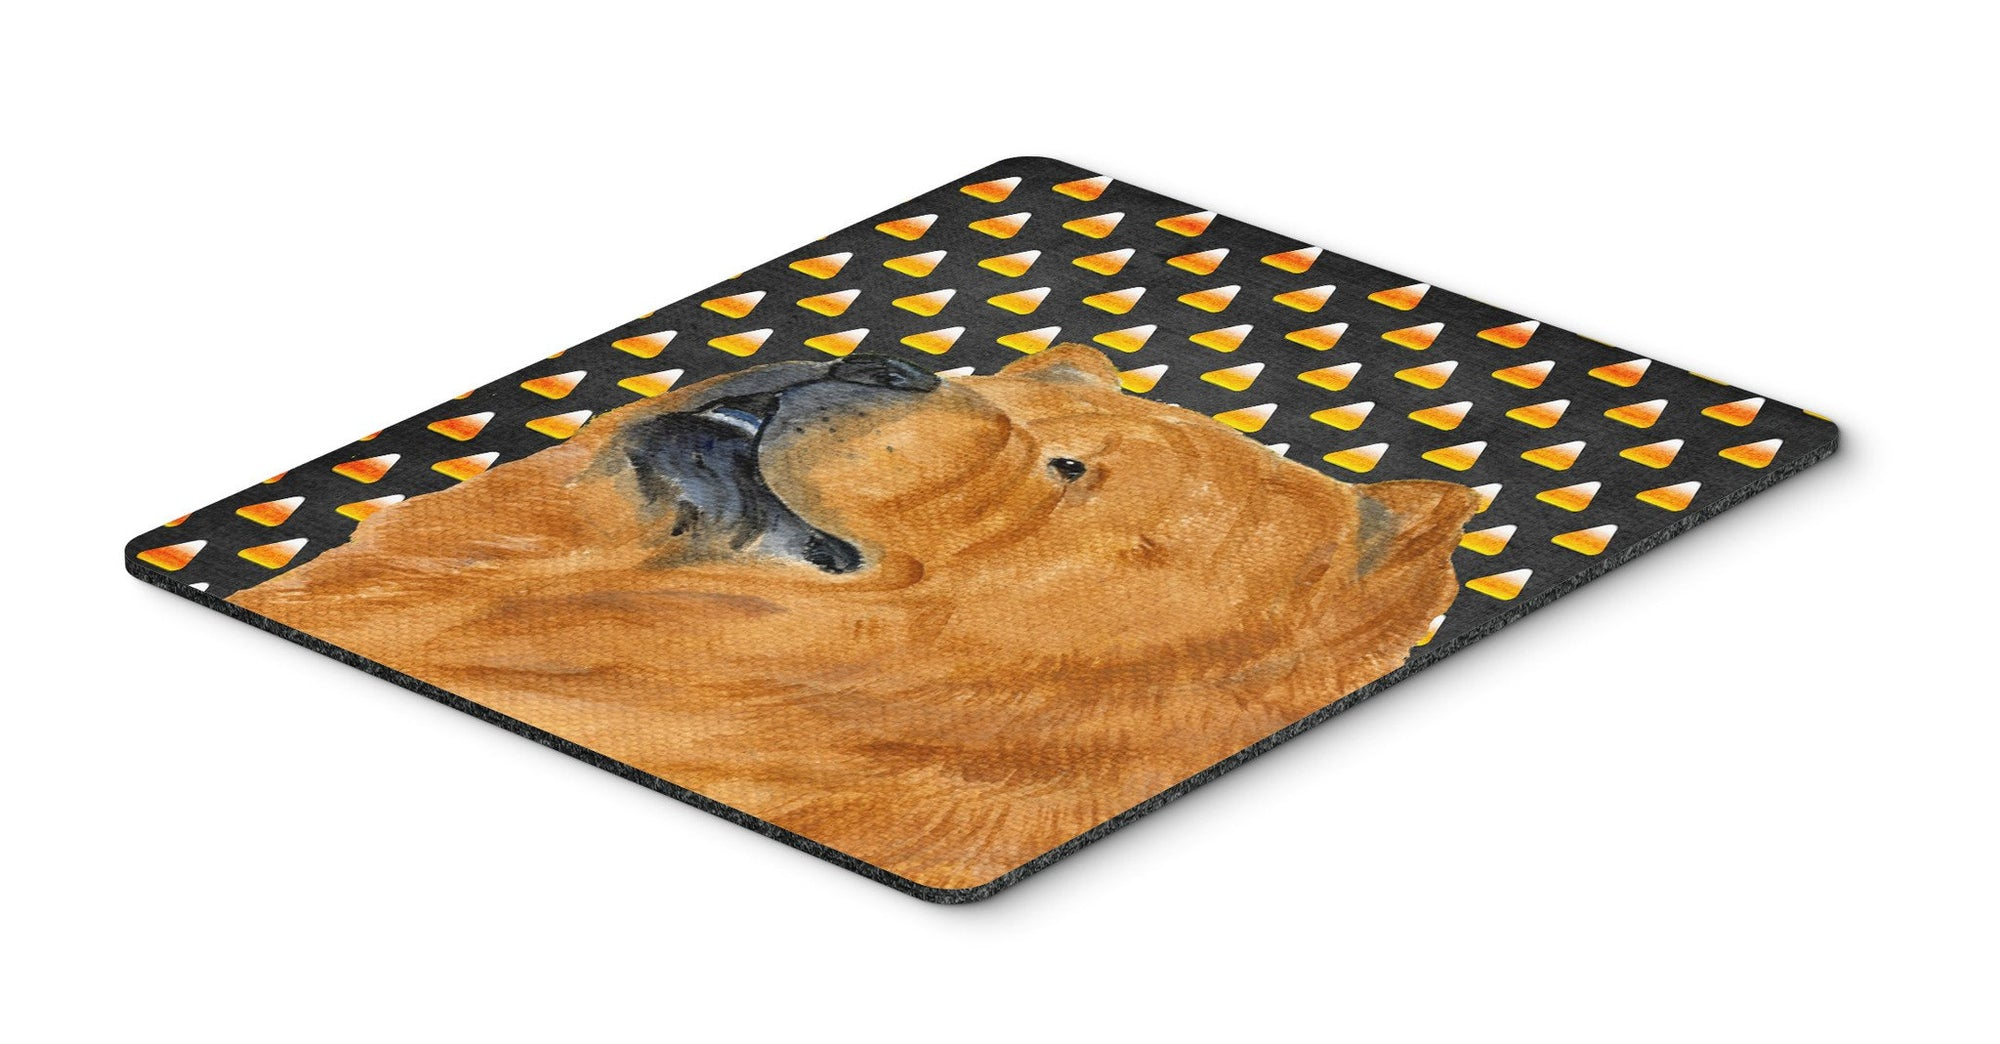 Chow Chow Candy Corn Halloween Portrait Mouse Pad, Hot Pad or Trivet by Caroline's Treasures